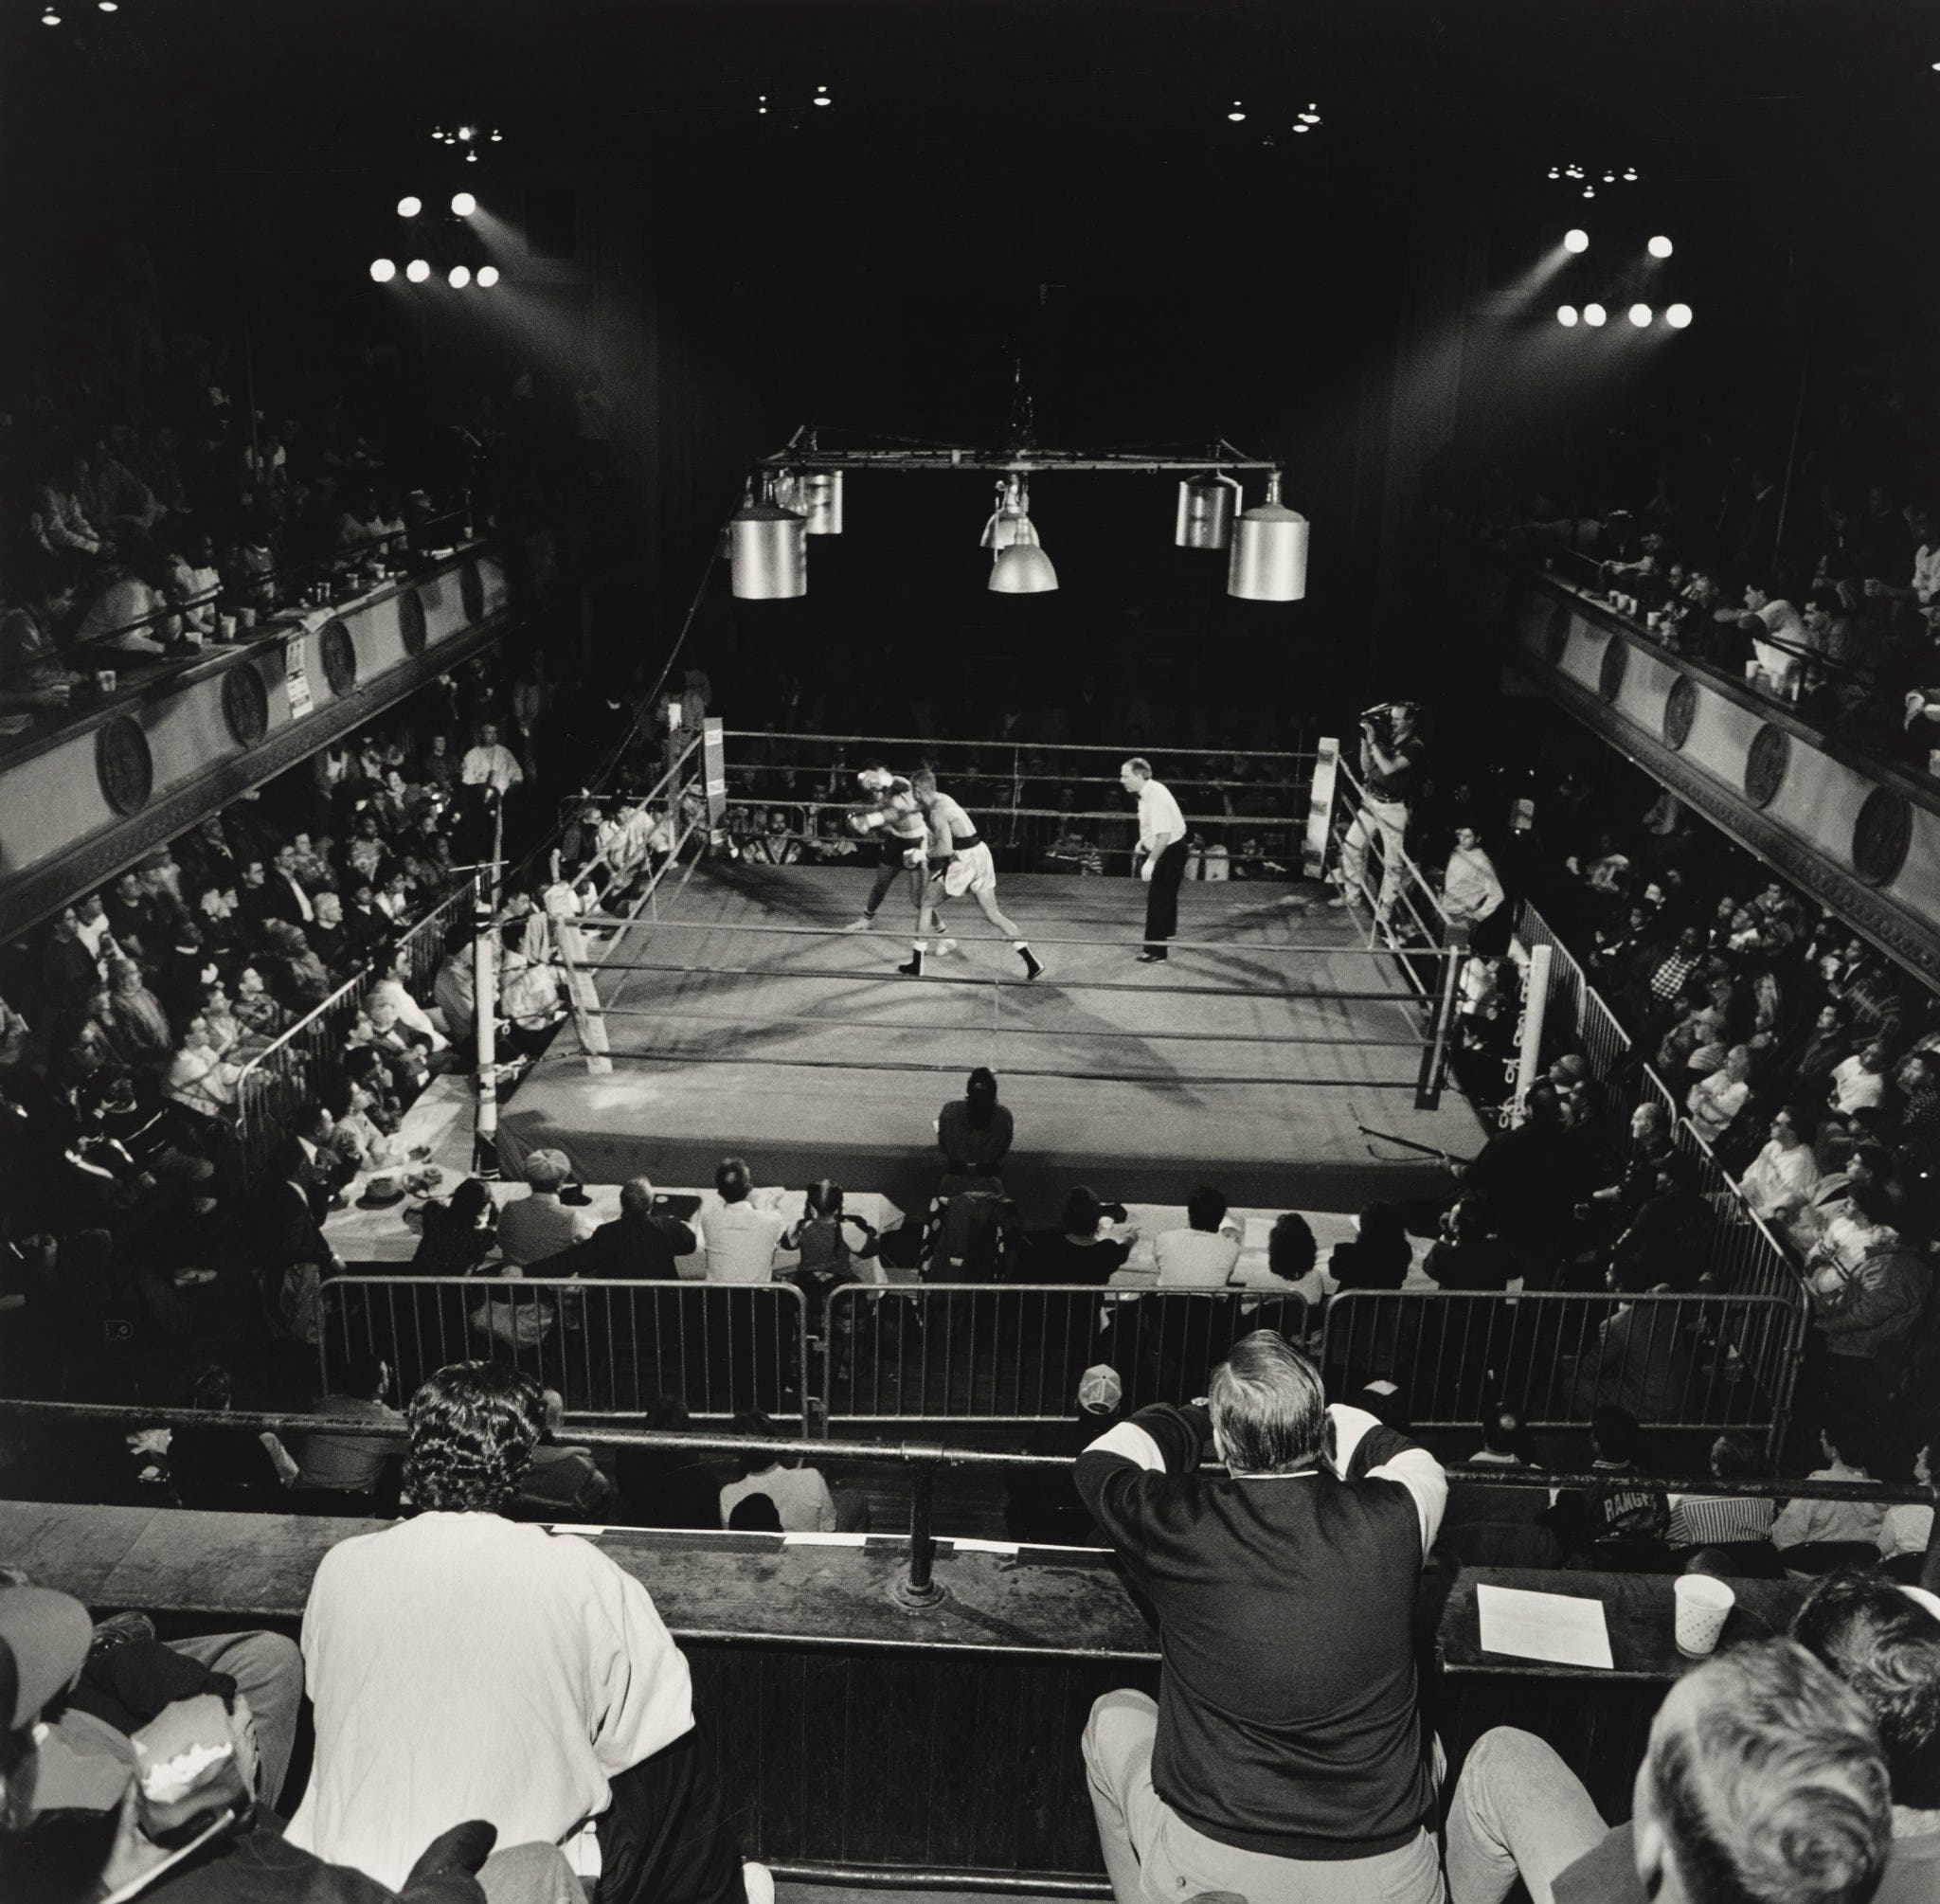 Larry Fink Exhibit Unravels the Drama In and Out of the Boxing Ring